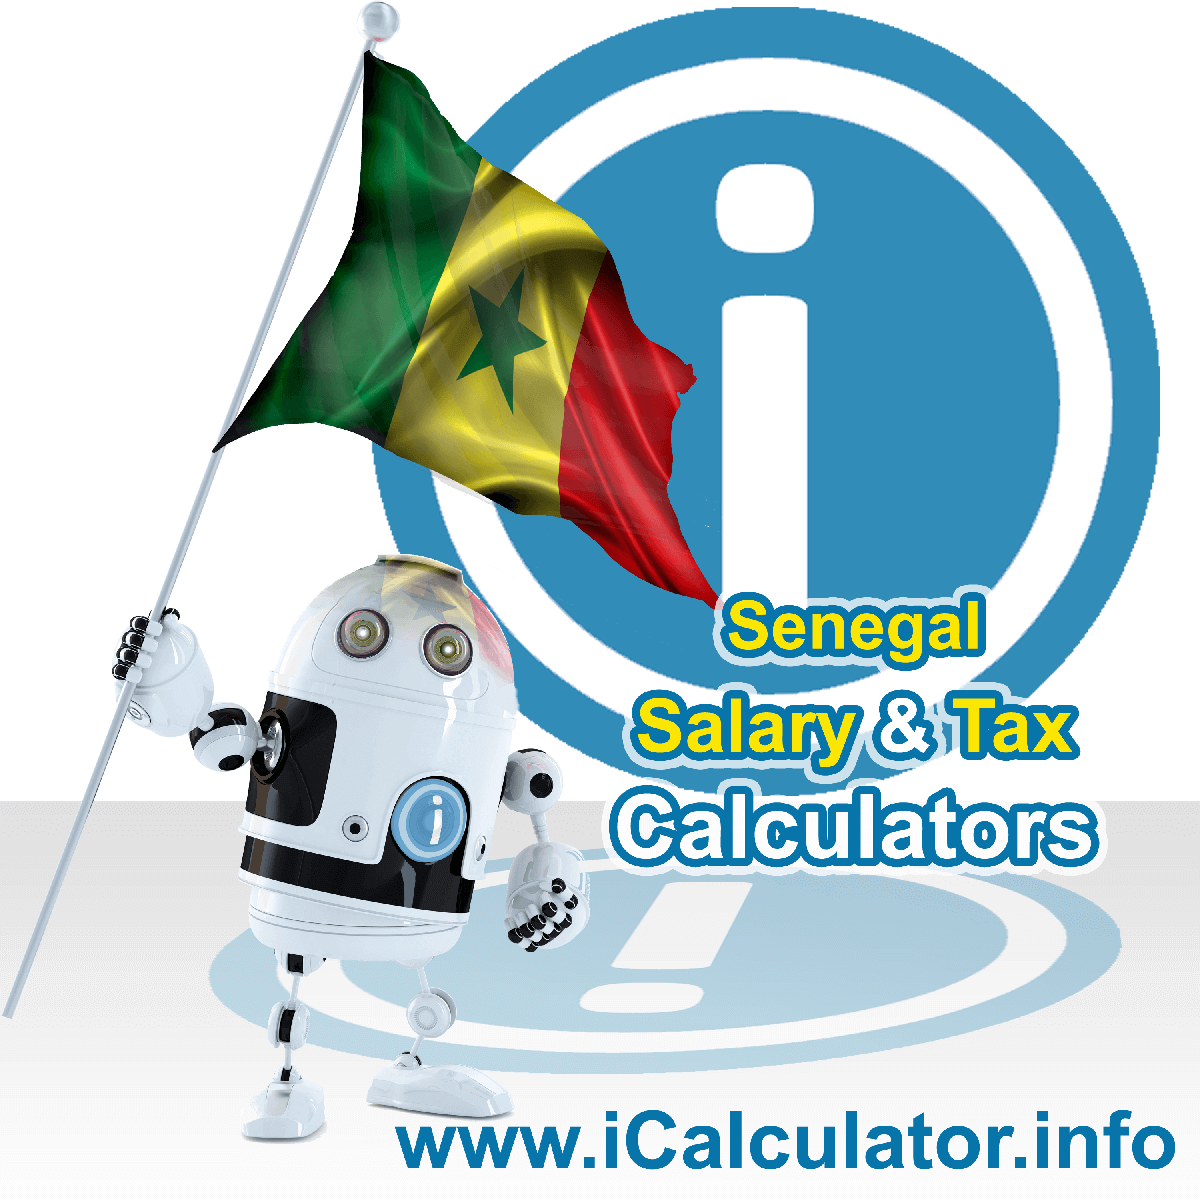 Senegal Wage Calculator. This image shows the Senegal flag and information relating to the tax formula for the Senegal Tax Calculator